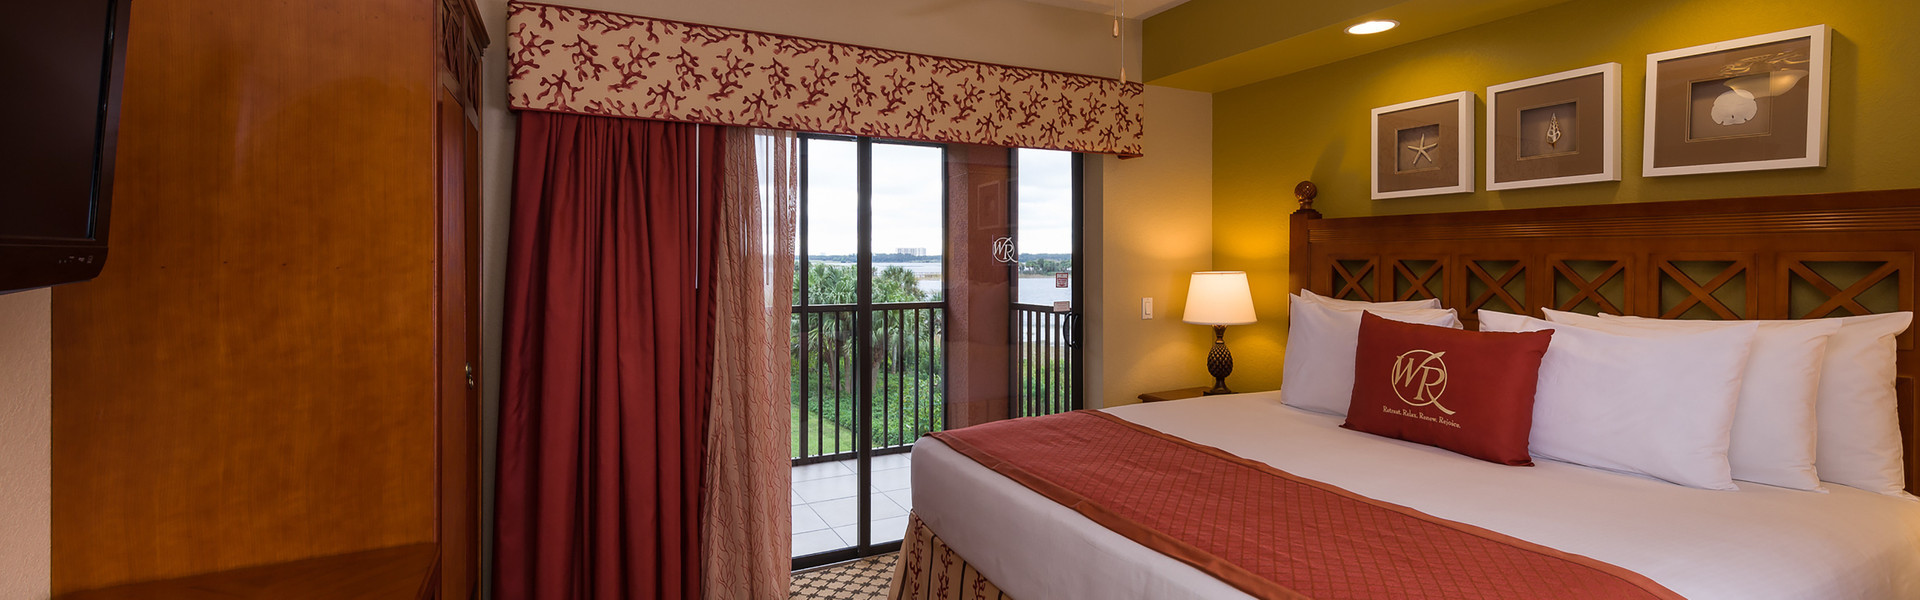 Hotel With 4 Bedroom Villa Suite Near Orlando | Suites Accommodations